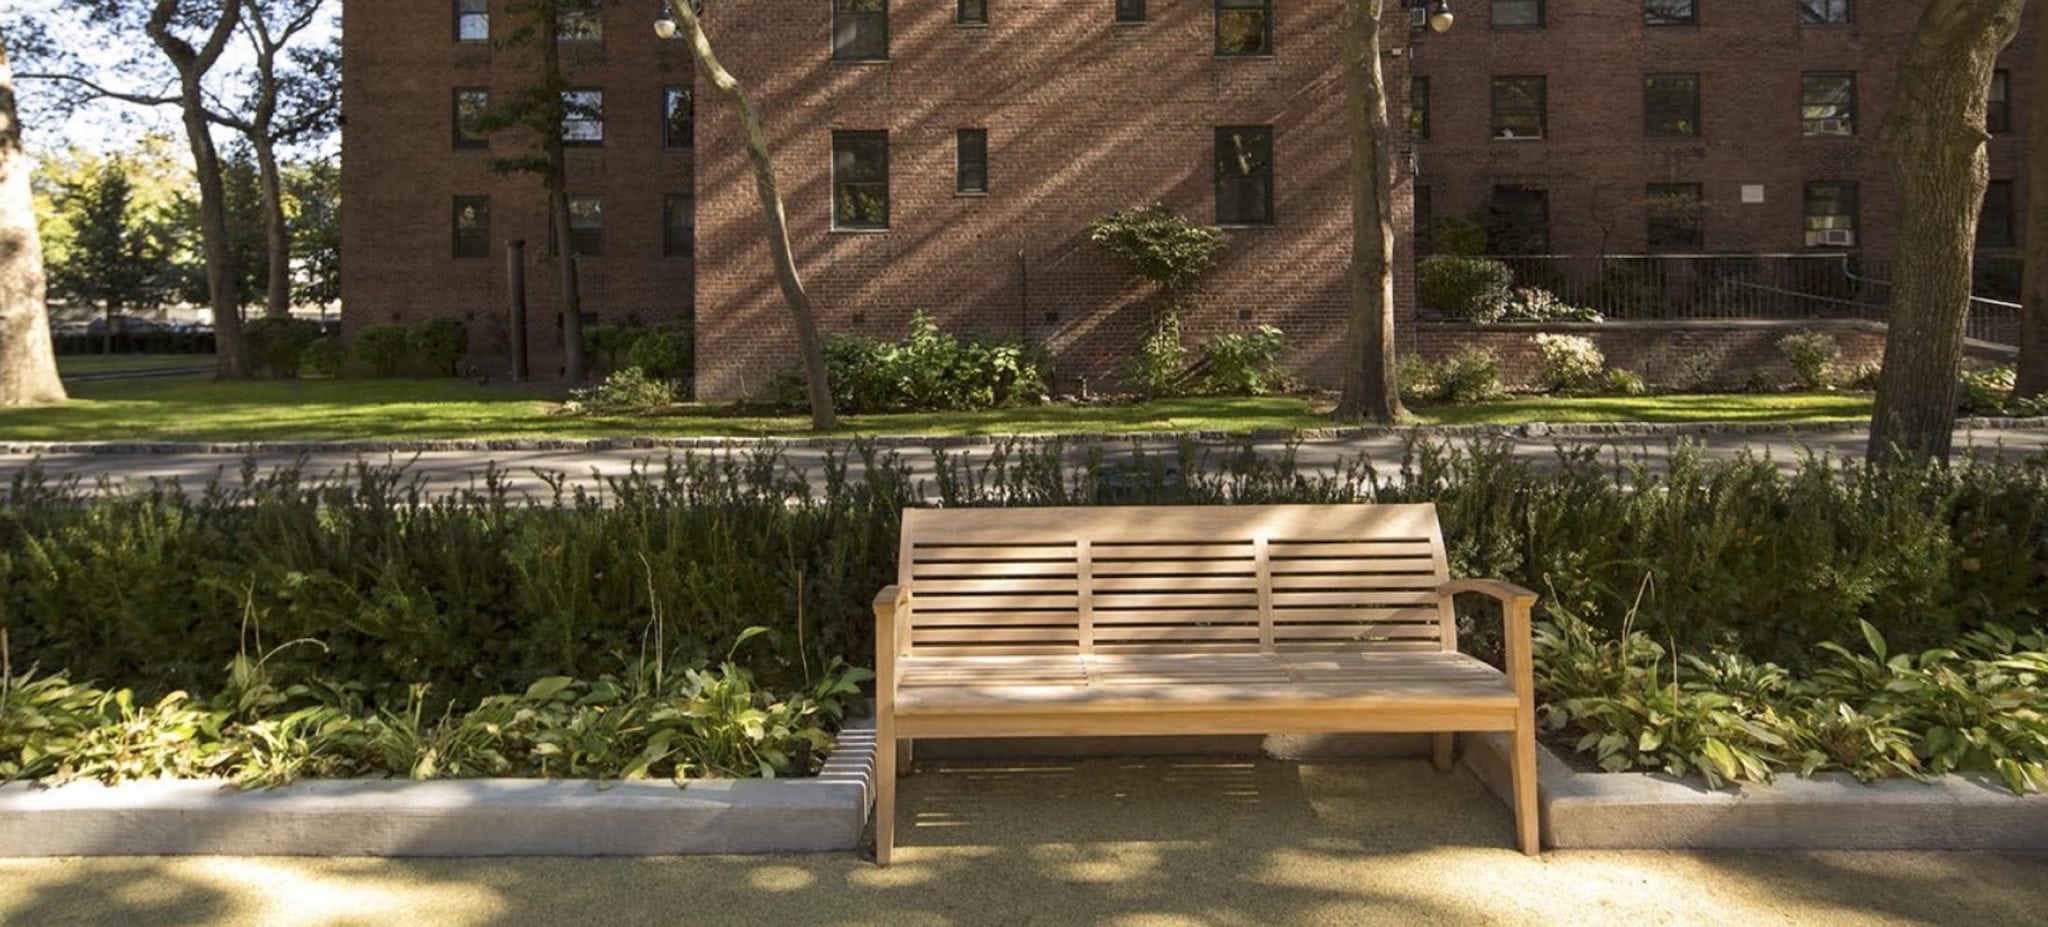 Riverton Square Outdoor Bench